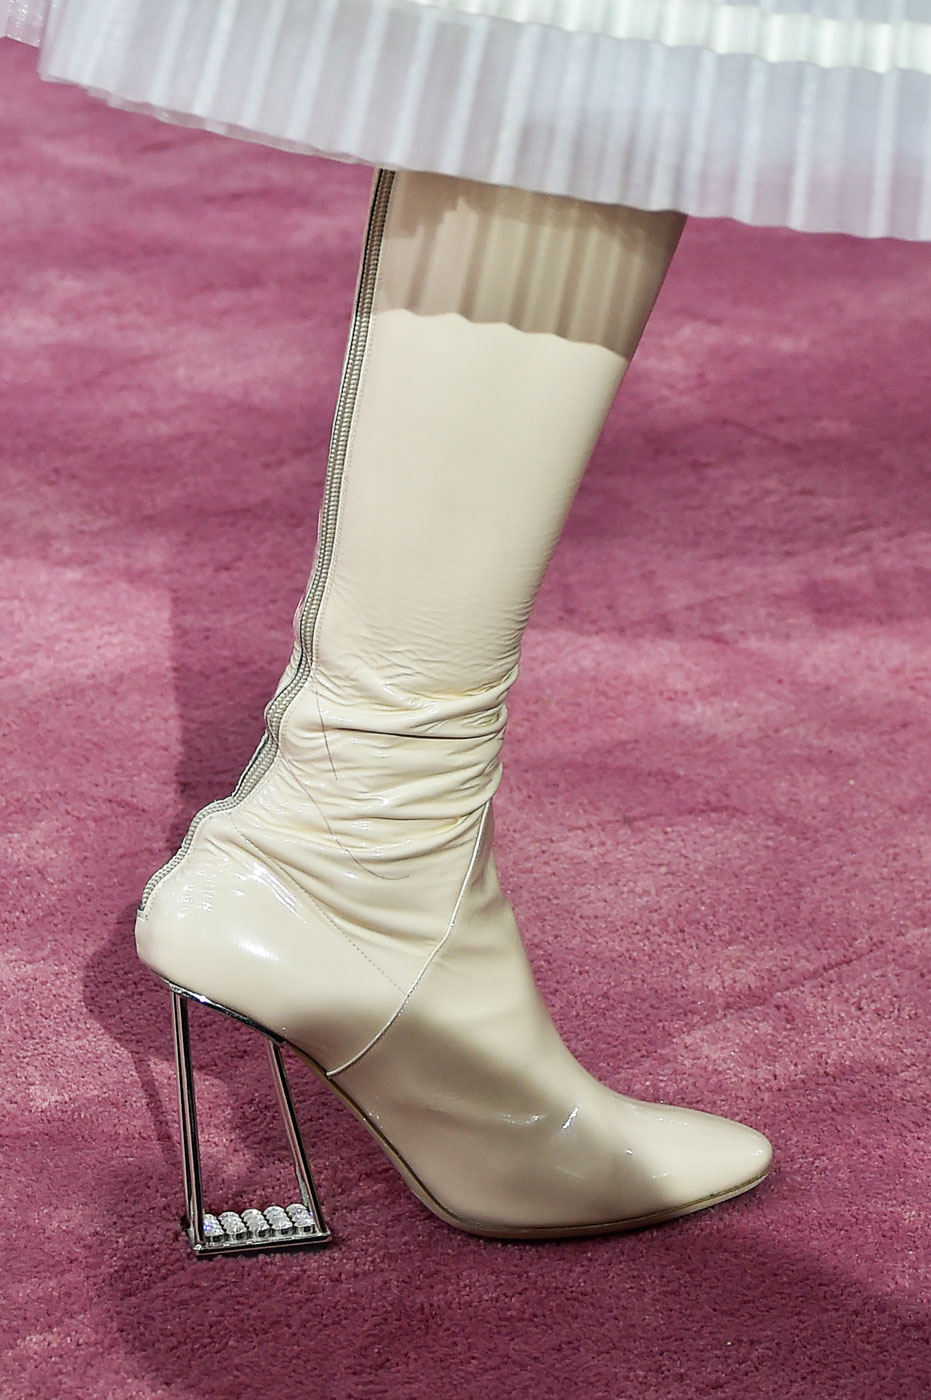 Christian-Dior-fashion-runway-show-close-ups-haute-couture-paris-spring-summer-2015-the-impression-144